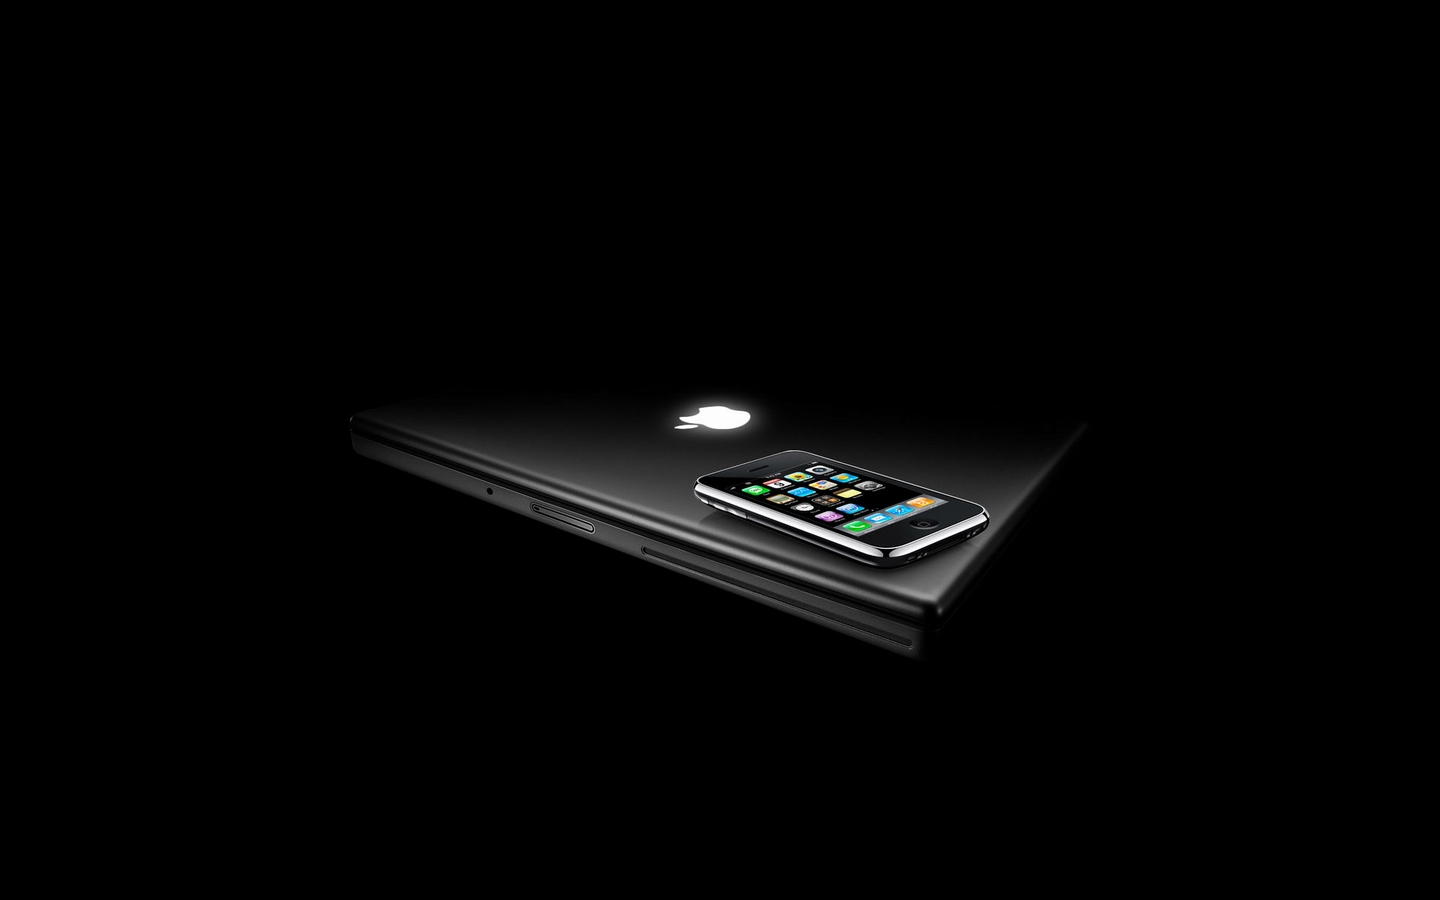 Awesome Apple Laptop and Apple iPhone HD Wallpapers Hd Wallpaper 1440x900